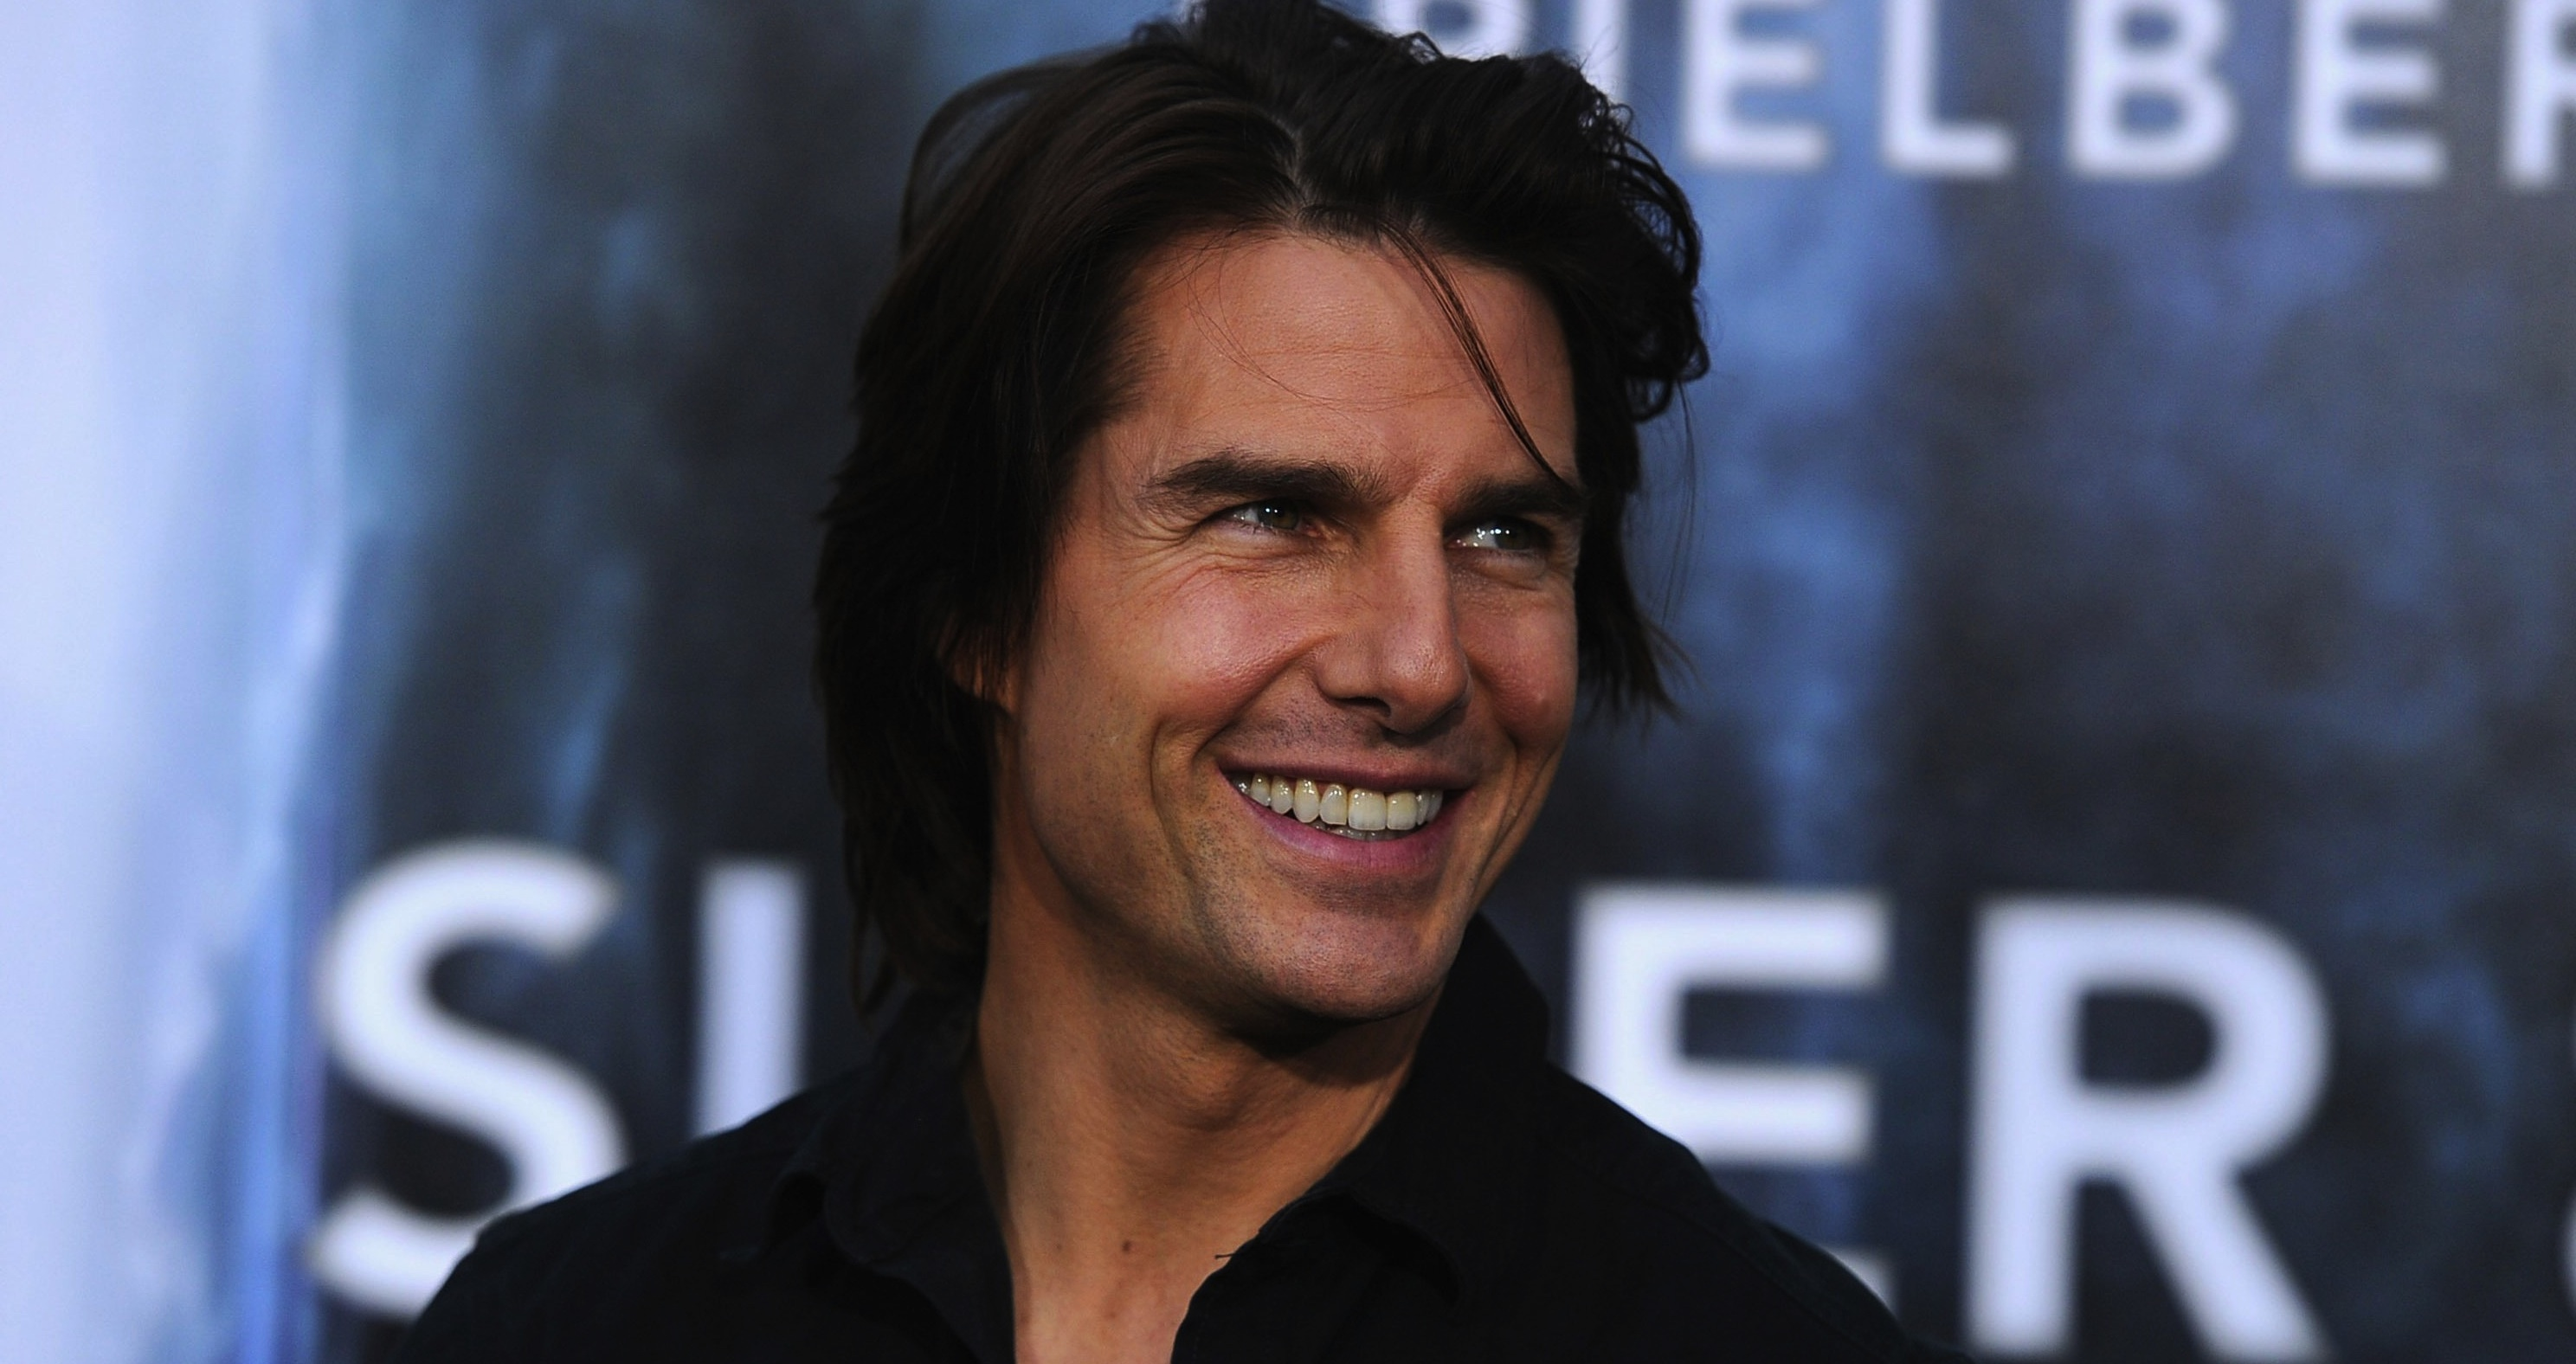 Tom Cruise To Be On The Other Side Of The Stake In Van Helsing